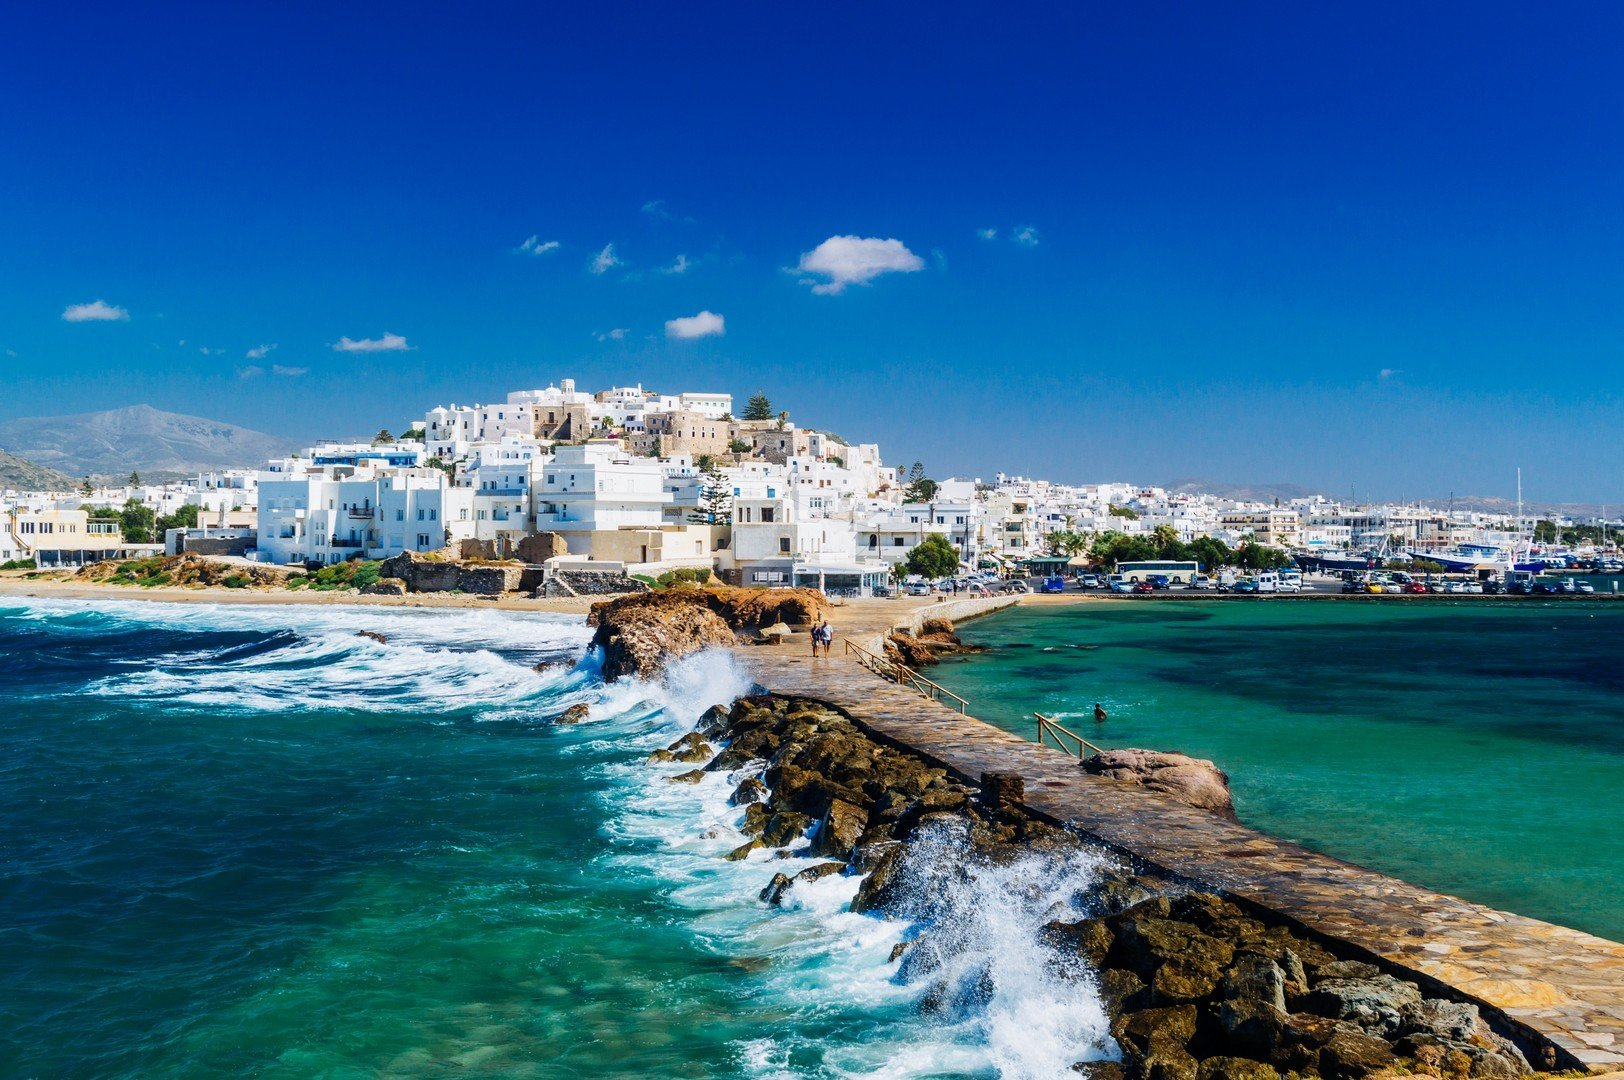 View of Naxos town and breaking waves, Cyclades archipelago, Greece shutterstock_553009312